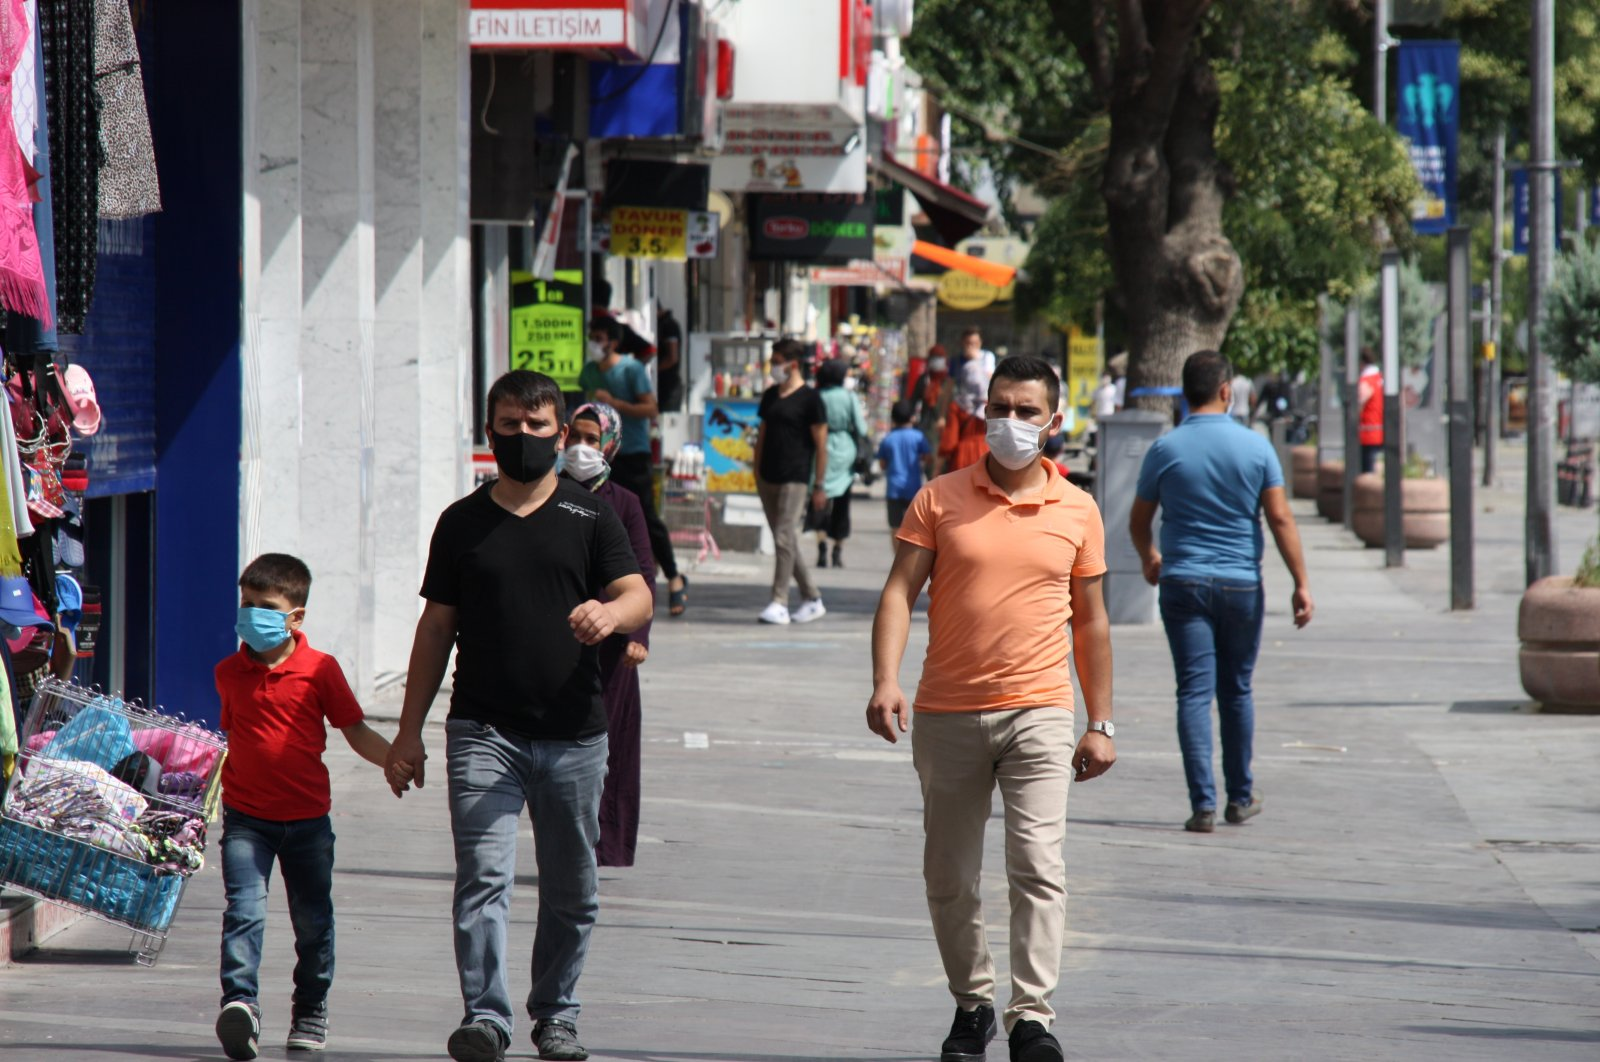 People wearing protective masks walk on a street, in Konya, central Turkey, Aug. 9, 2020. (AA Photo)